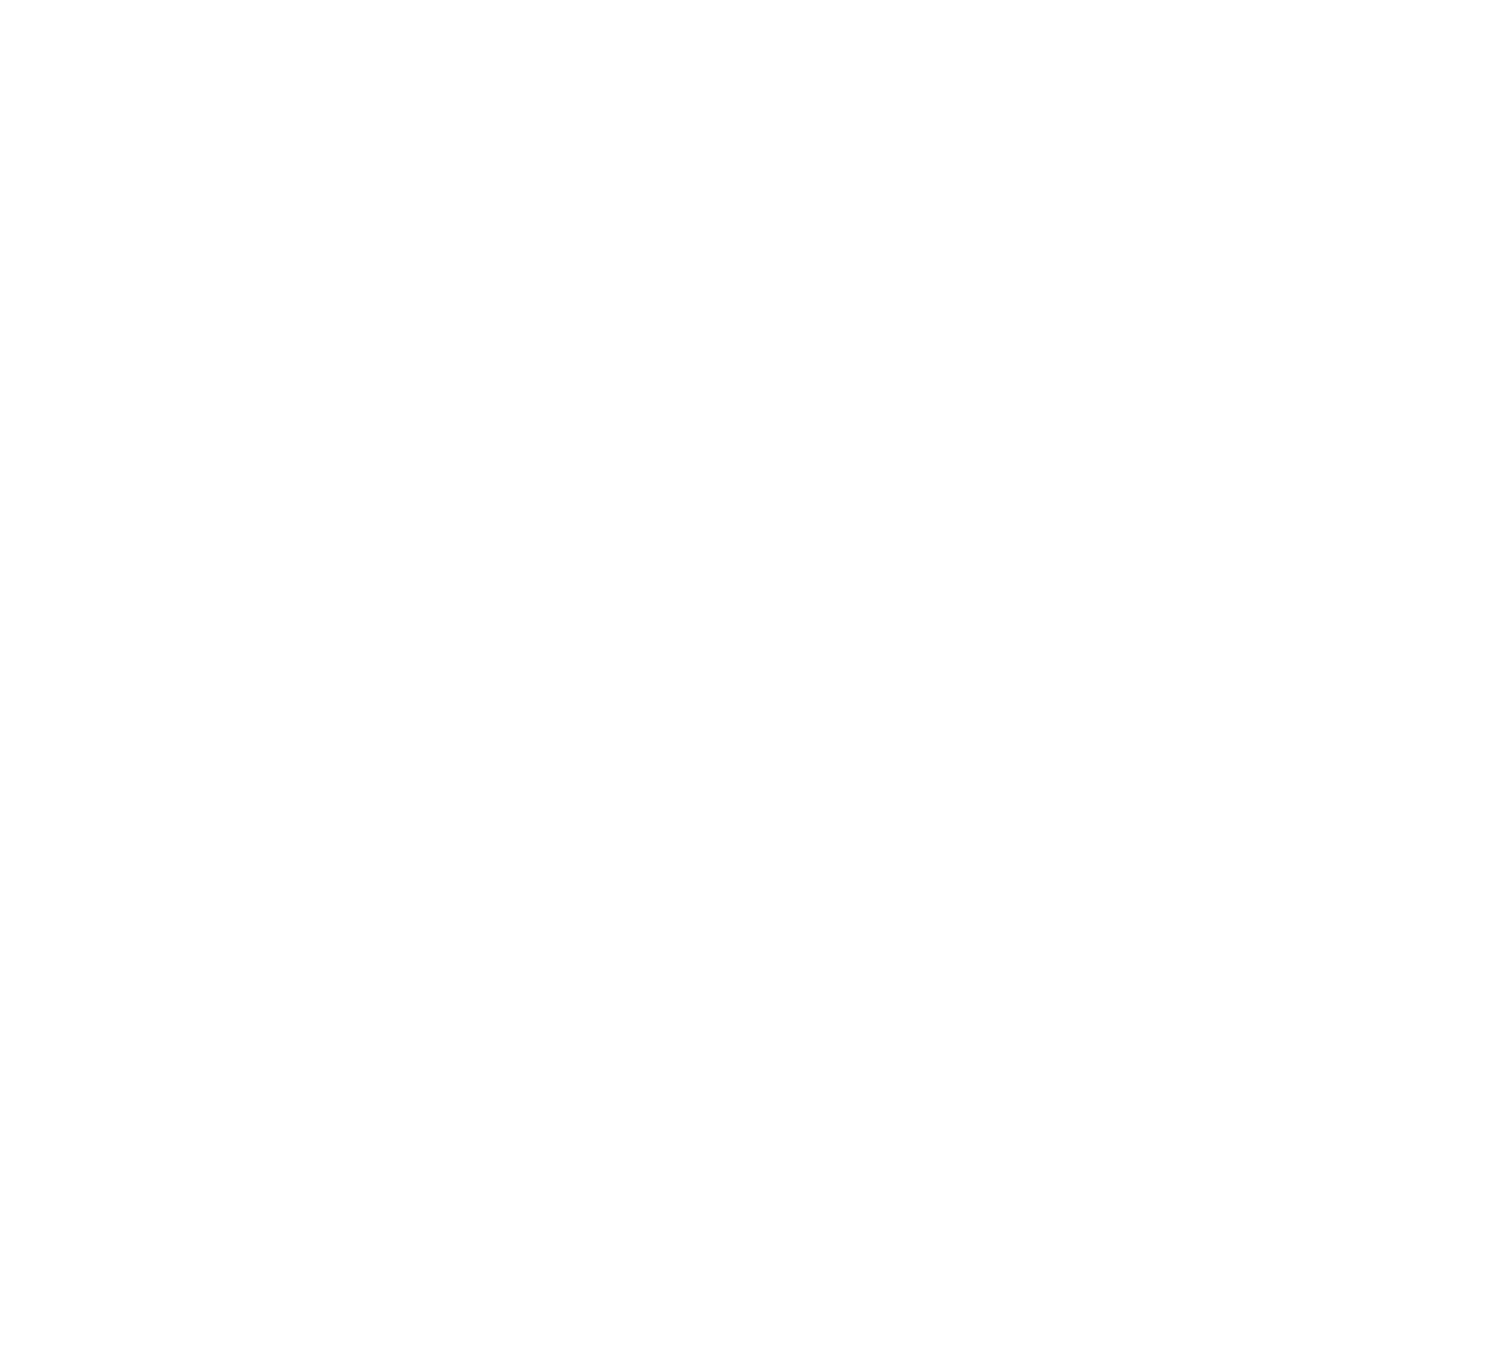 Heartwood Folk School